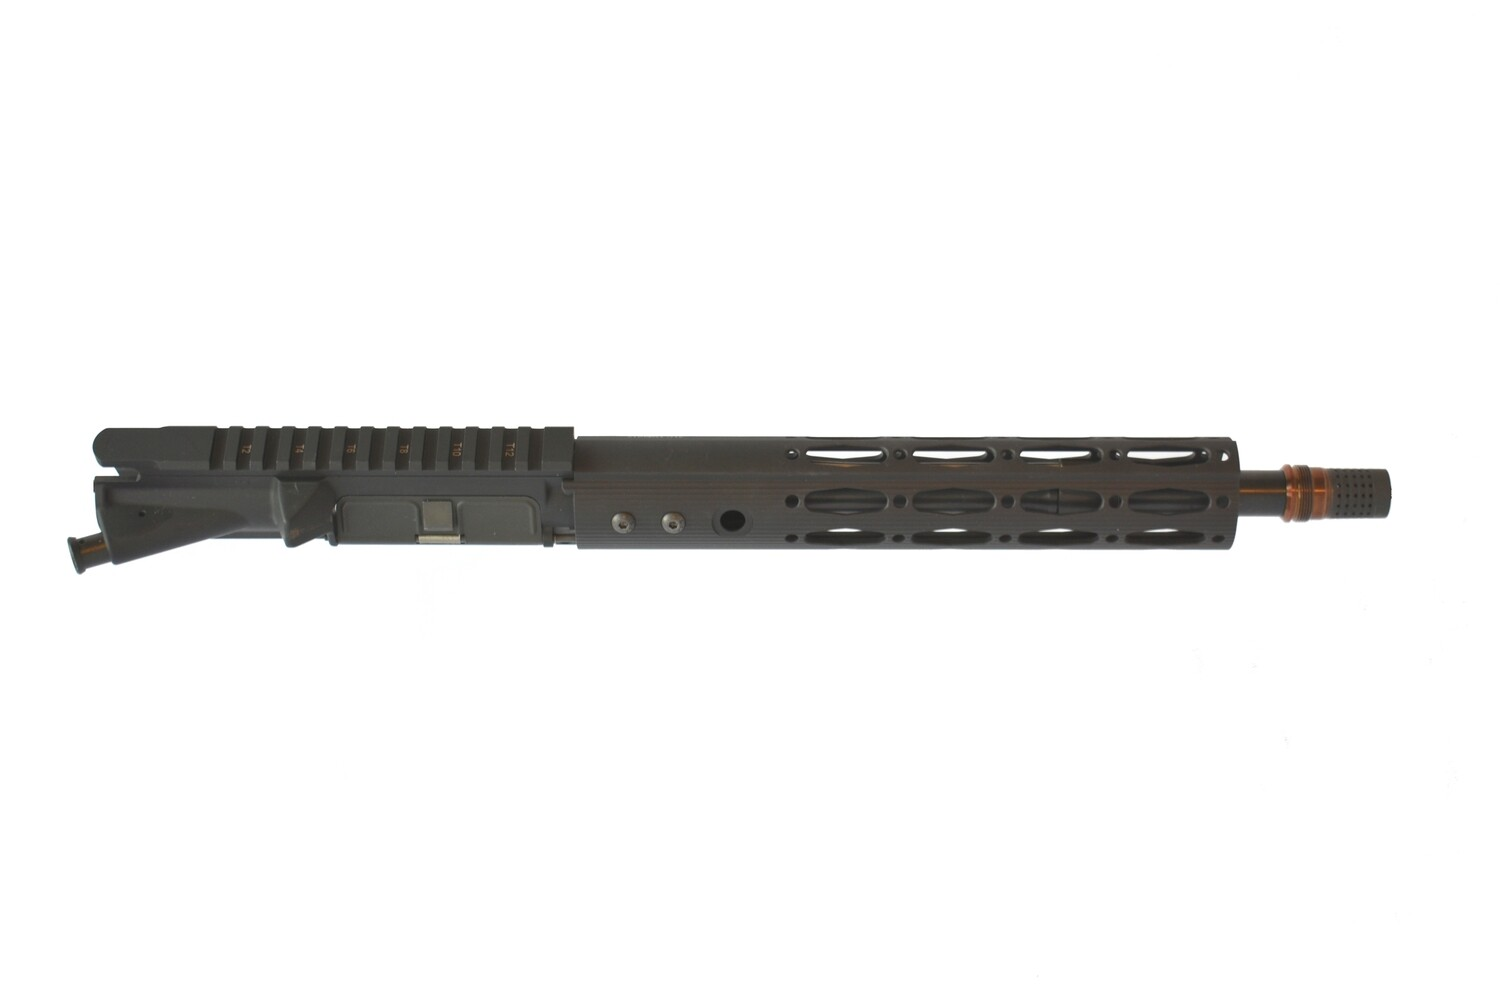 "BRT OPTIMUM 11.5"" Upper Receiver Group"